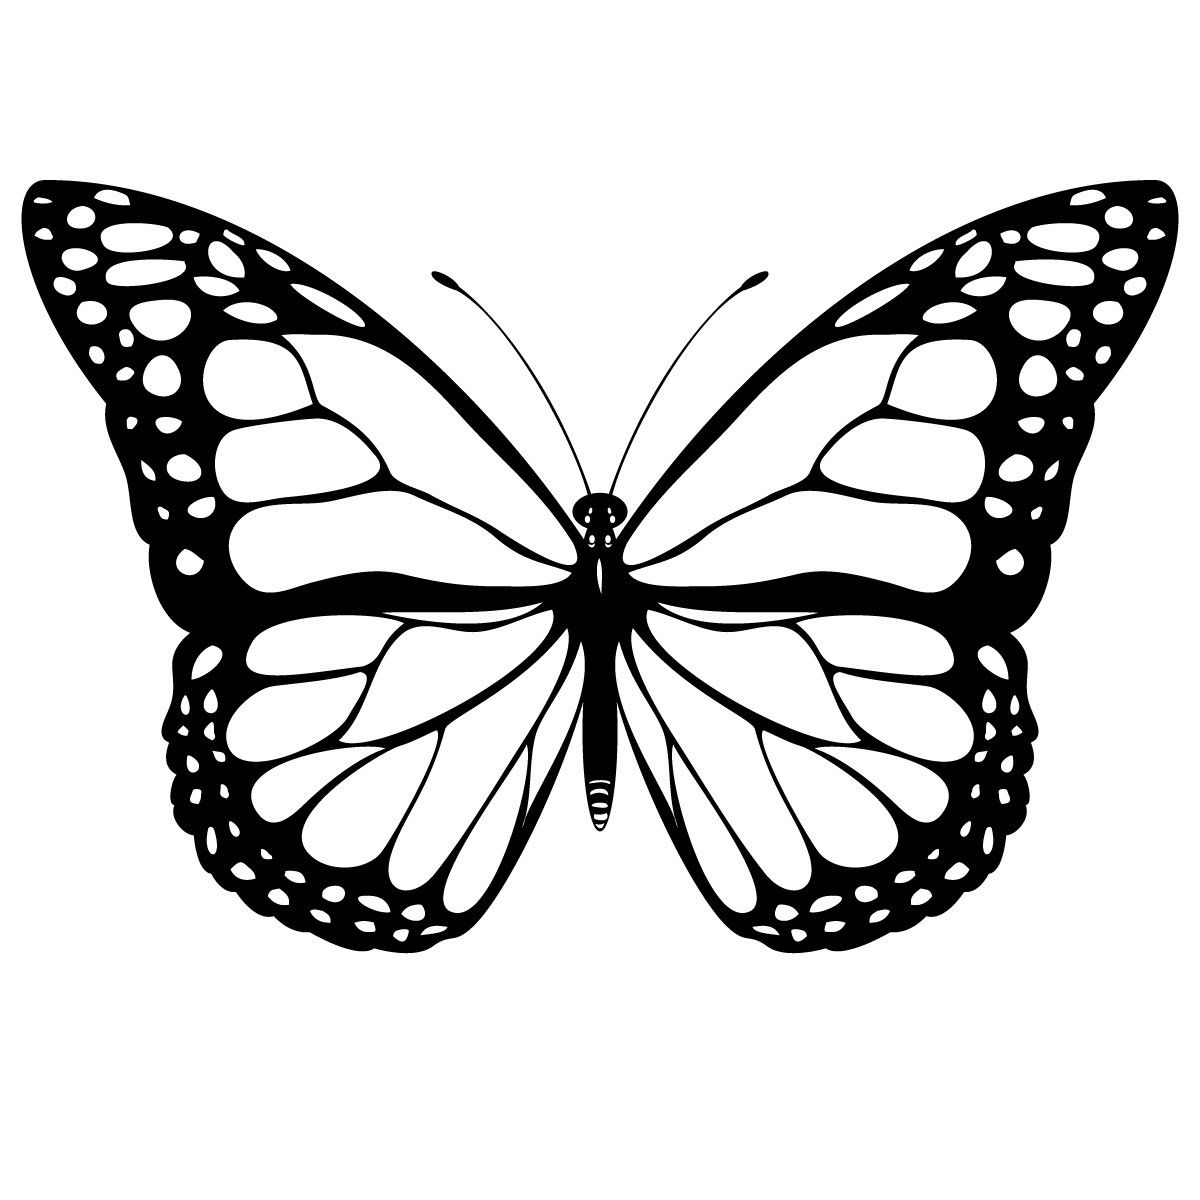 Free Printable Butterfly Coloring Pages For Kids | Pinterest ...